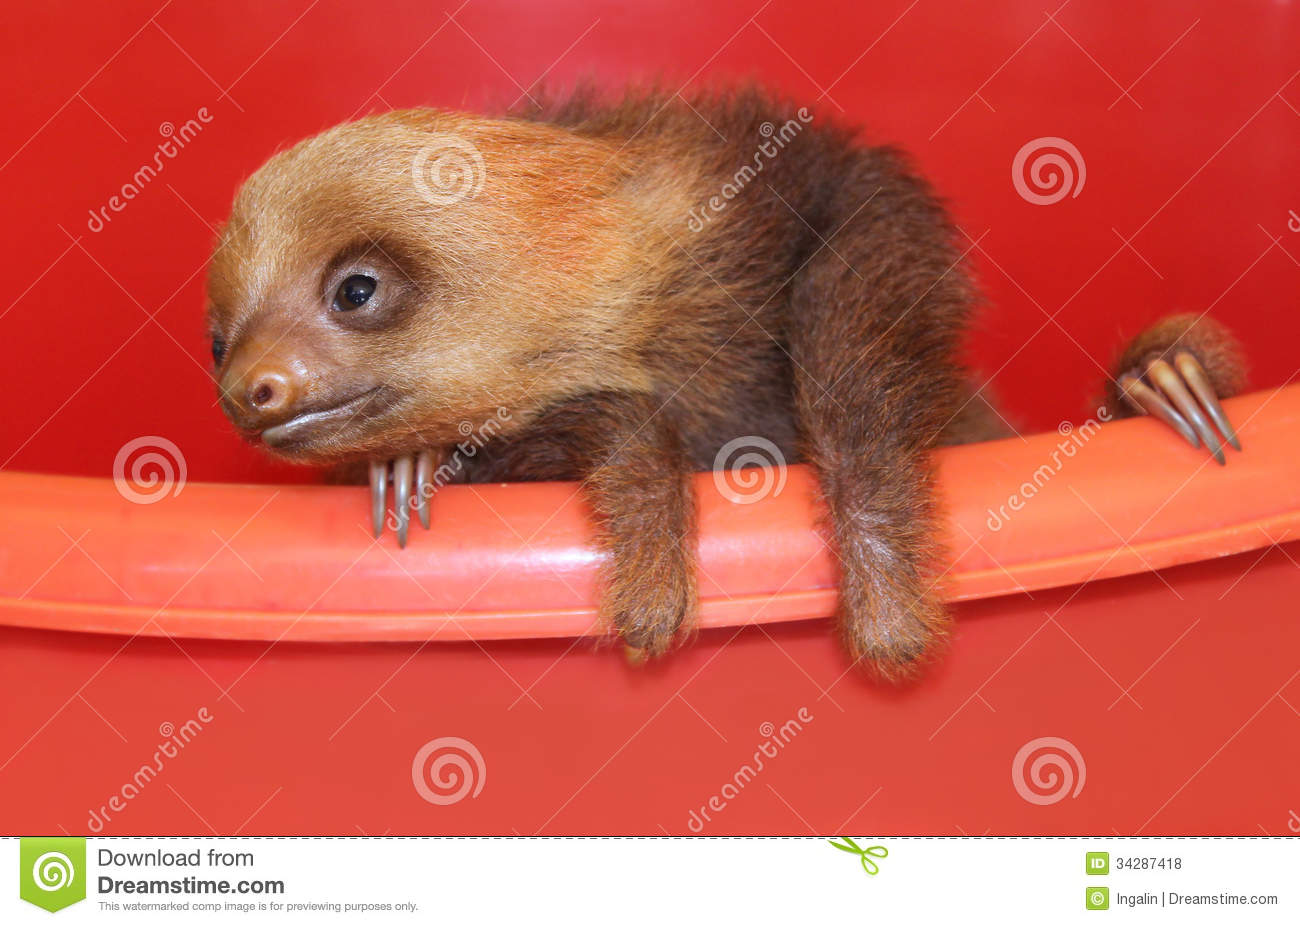 Baby Sloth In An Animal Sanctuary, Costa Rica Royalty Free Stock ...